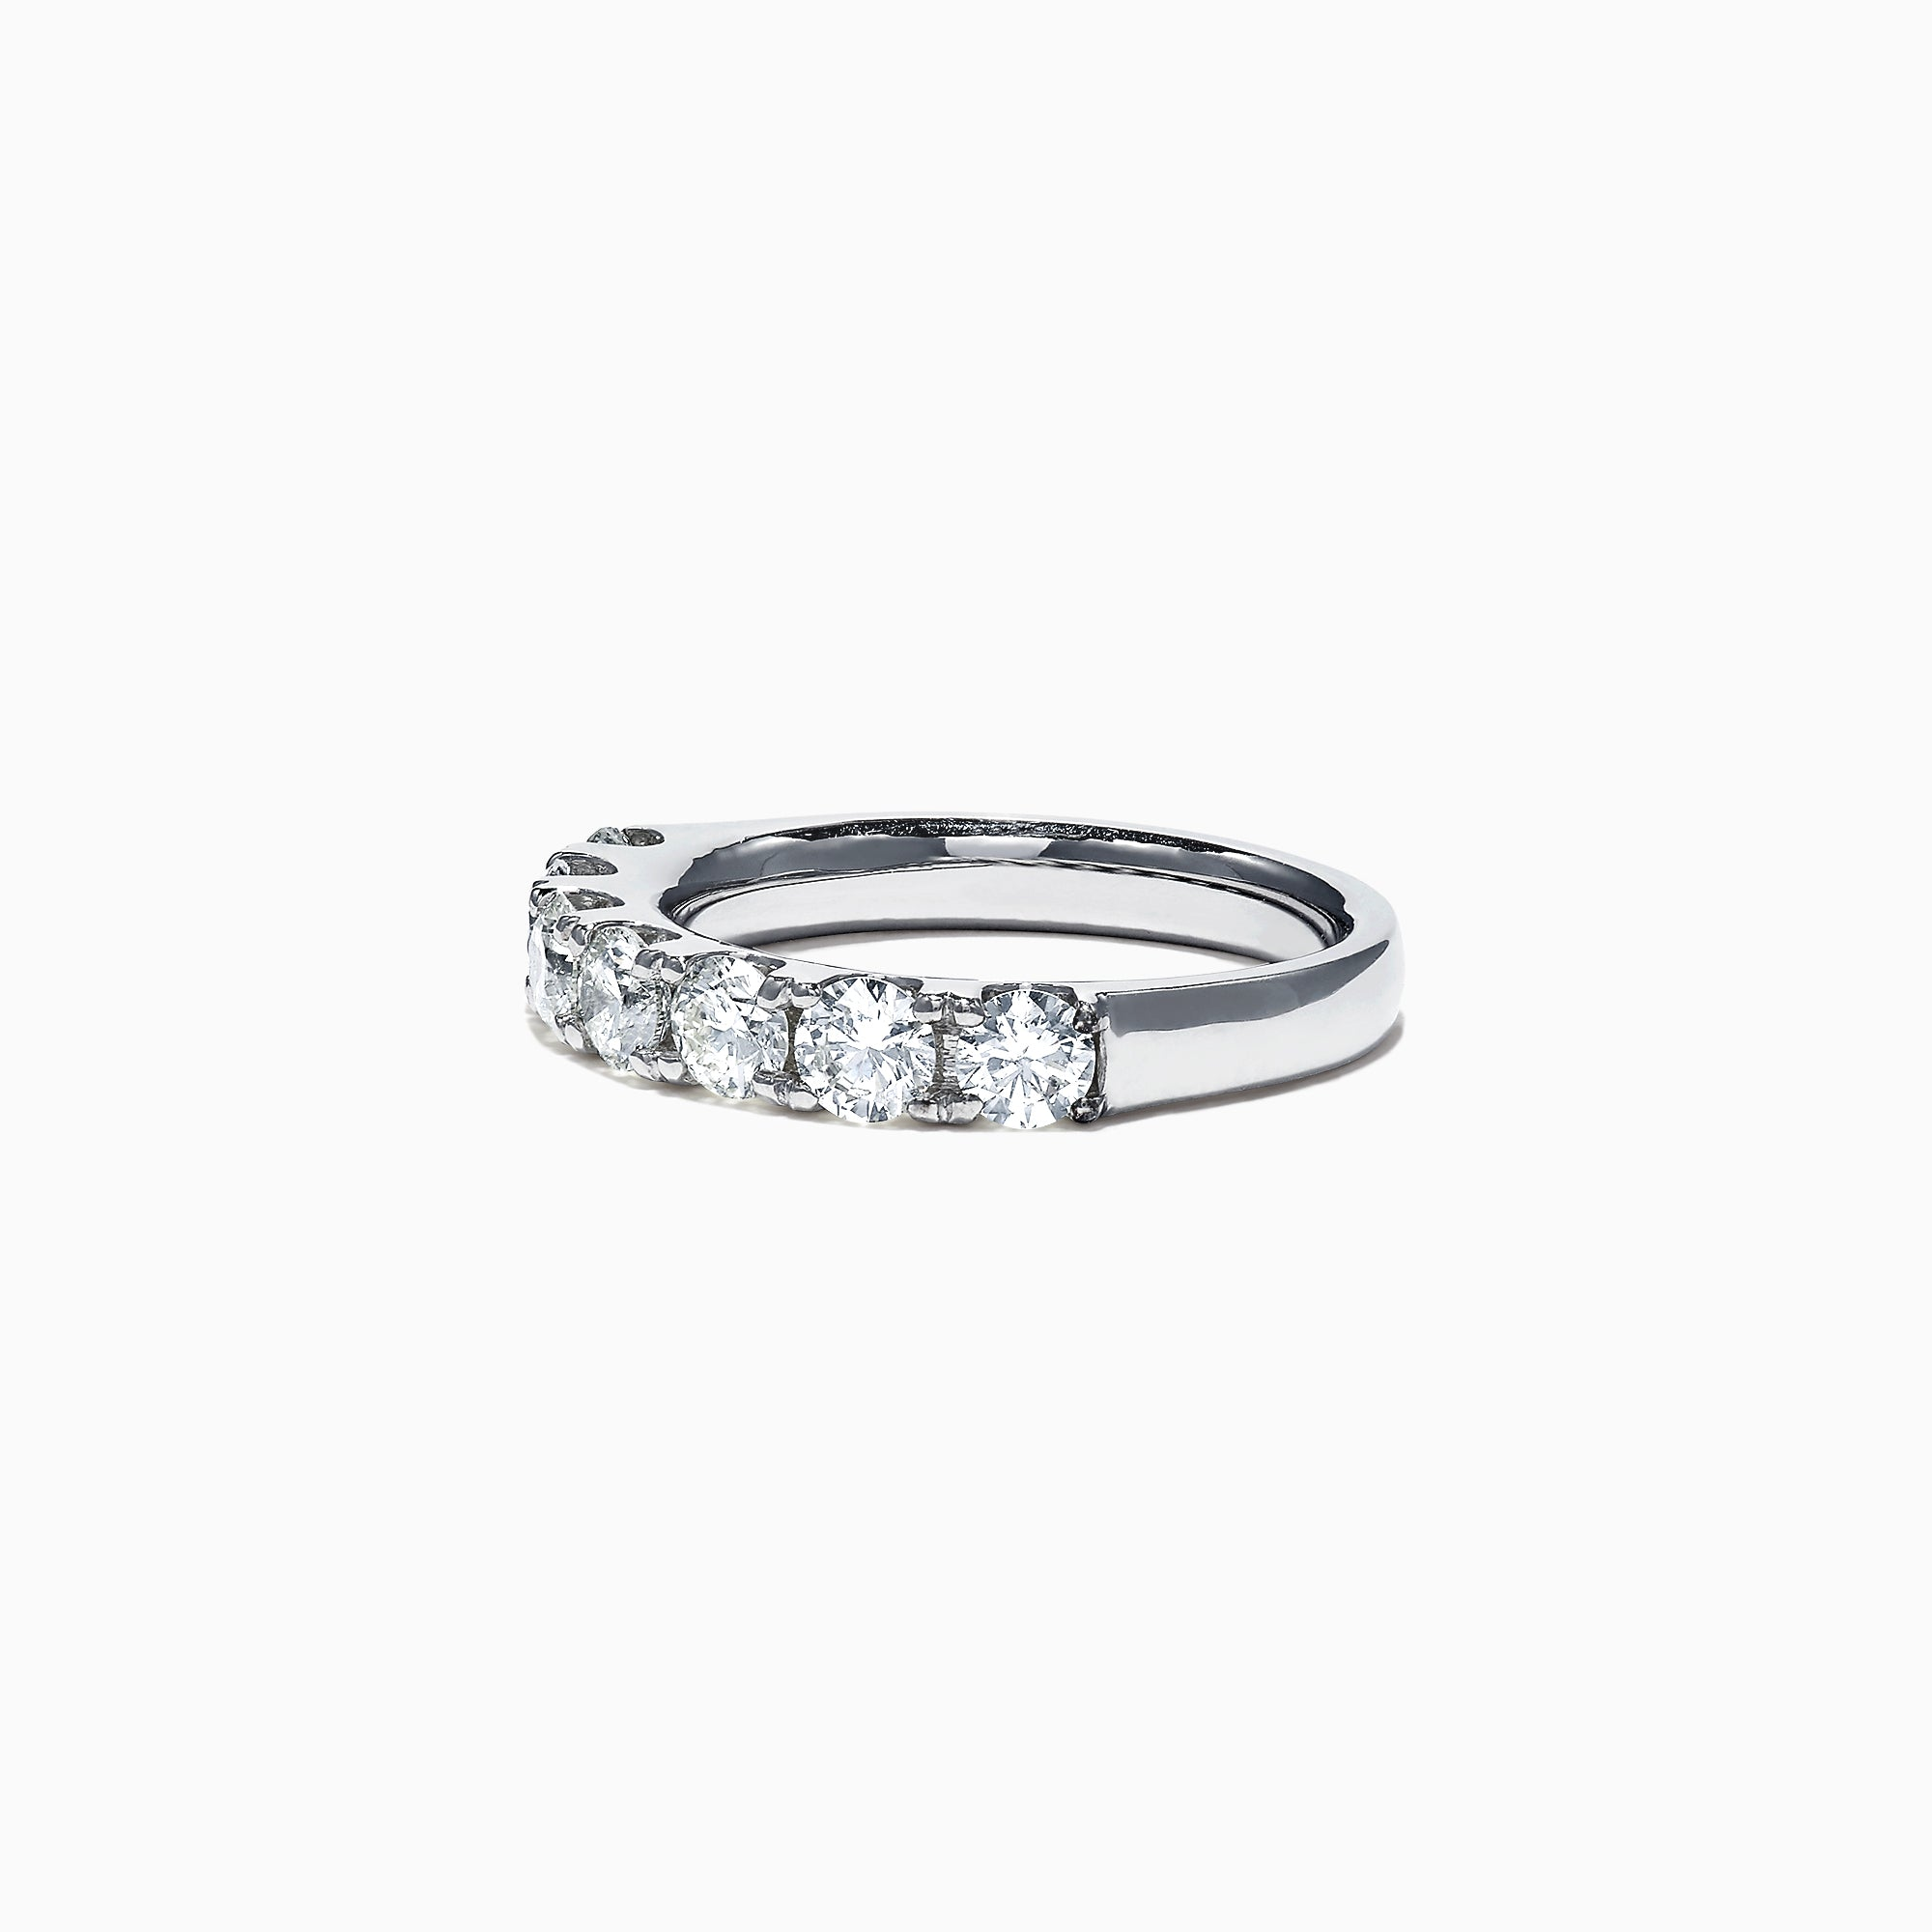 Effy Pave Classica 14k White Gold Diamond Ring, 1.37 TCW